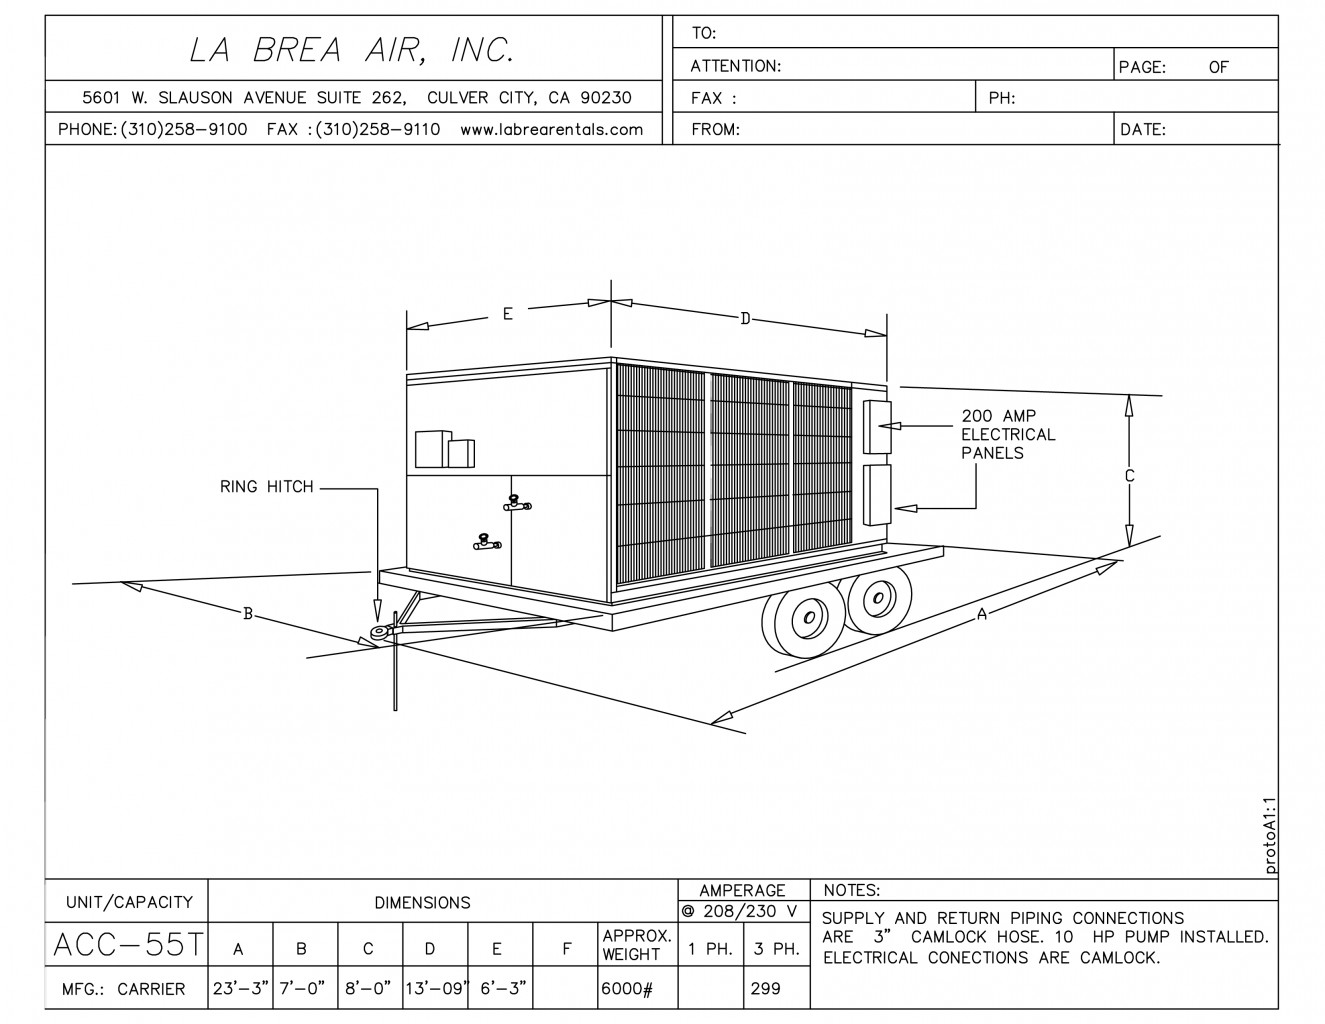 55 Ton Temporary Air Cooled Chiller Rental La Brea Air